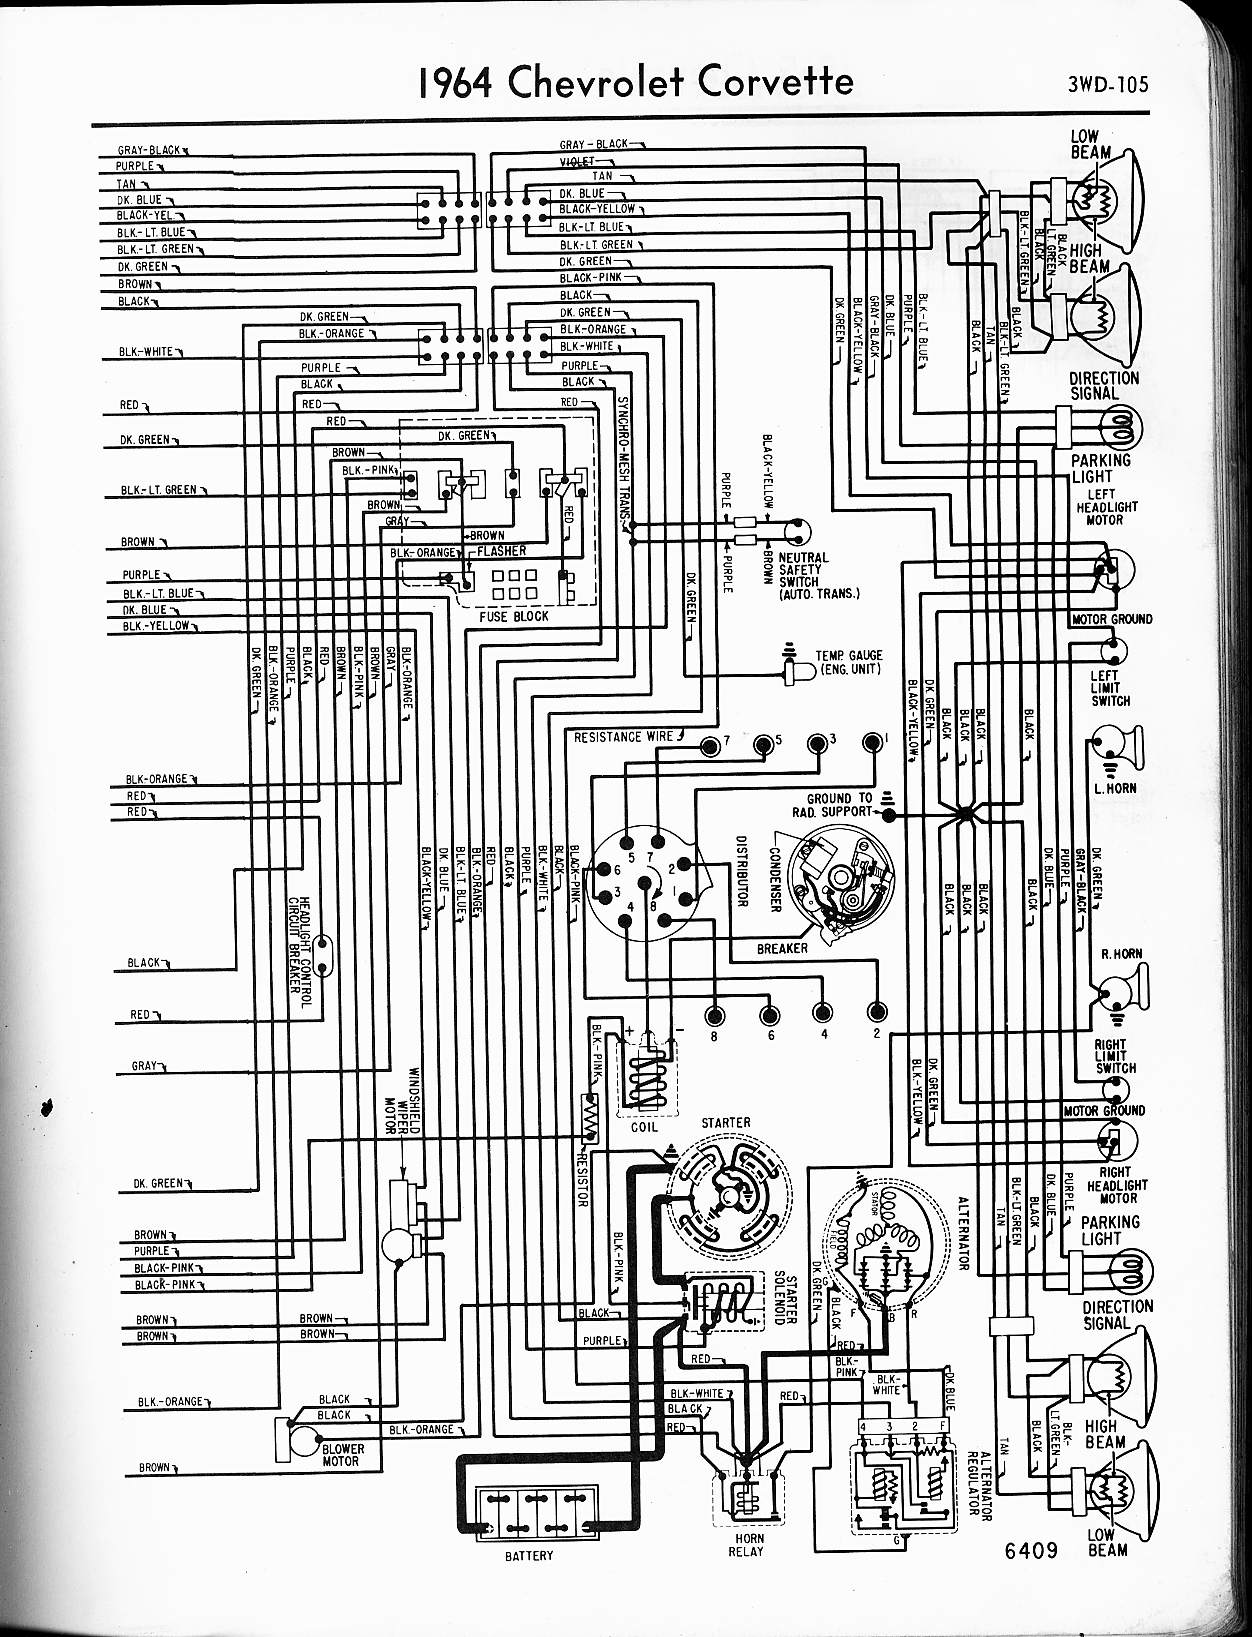 MWireChev64_3WD 105 57 65 chevy wiring diagrams 1960 corvette wiring diagram at aneh.co